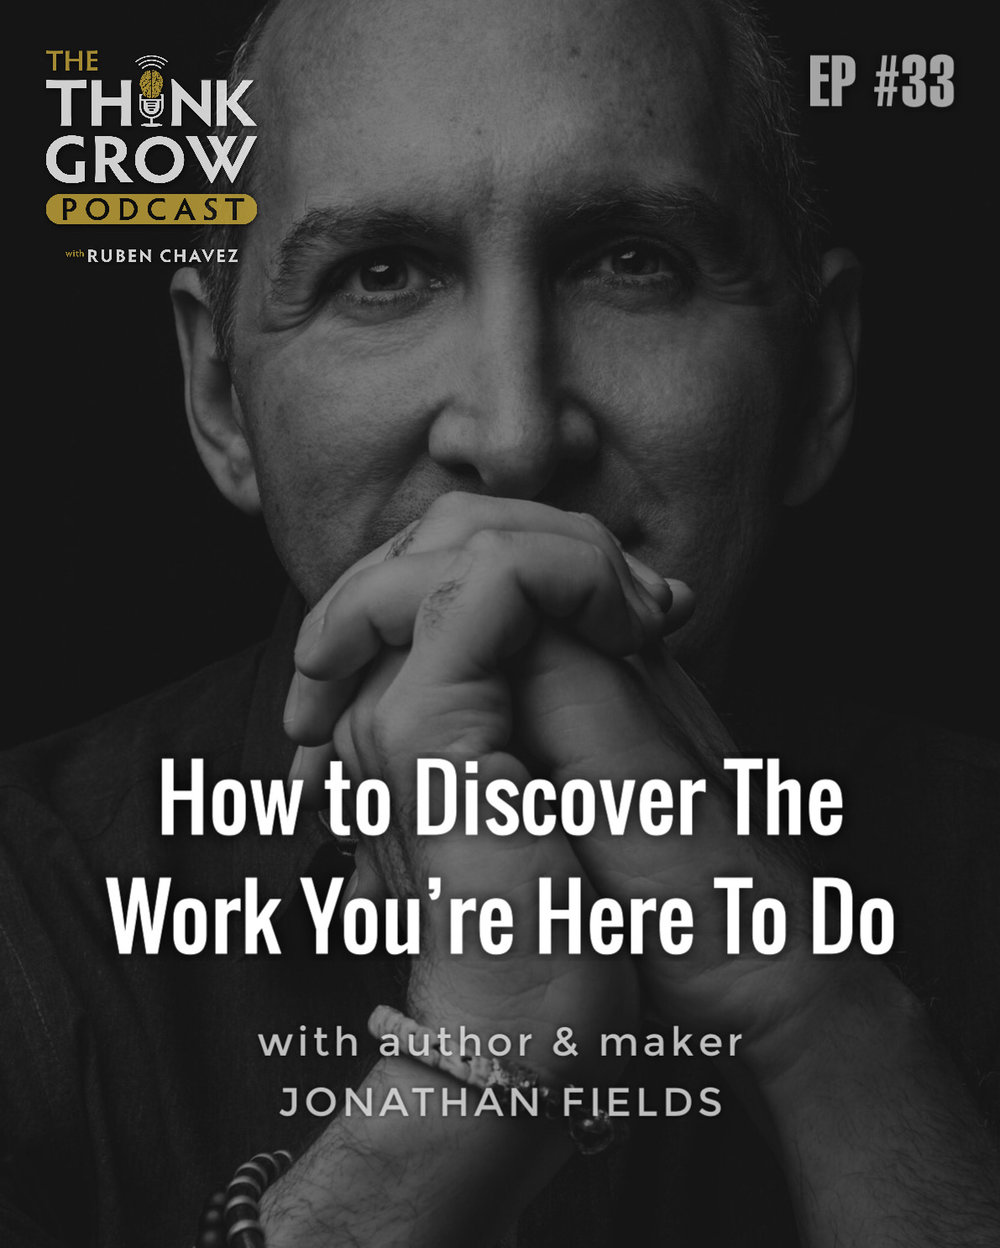 Jonathan Fields - How to Discover The Work You're Here To Do